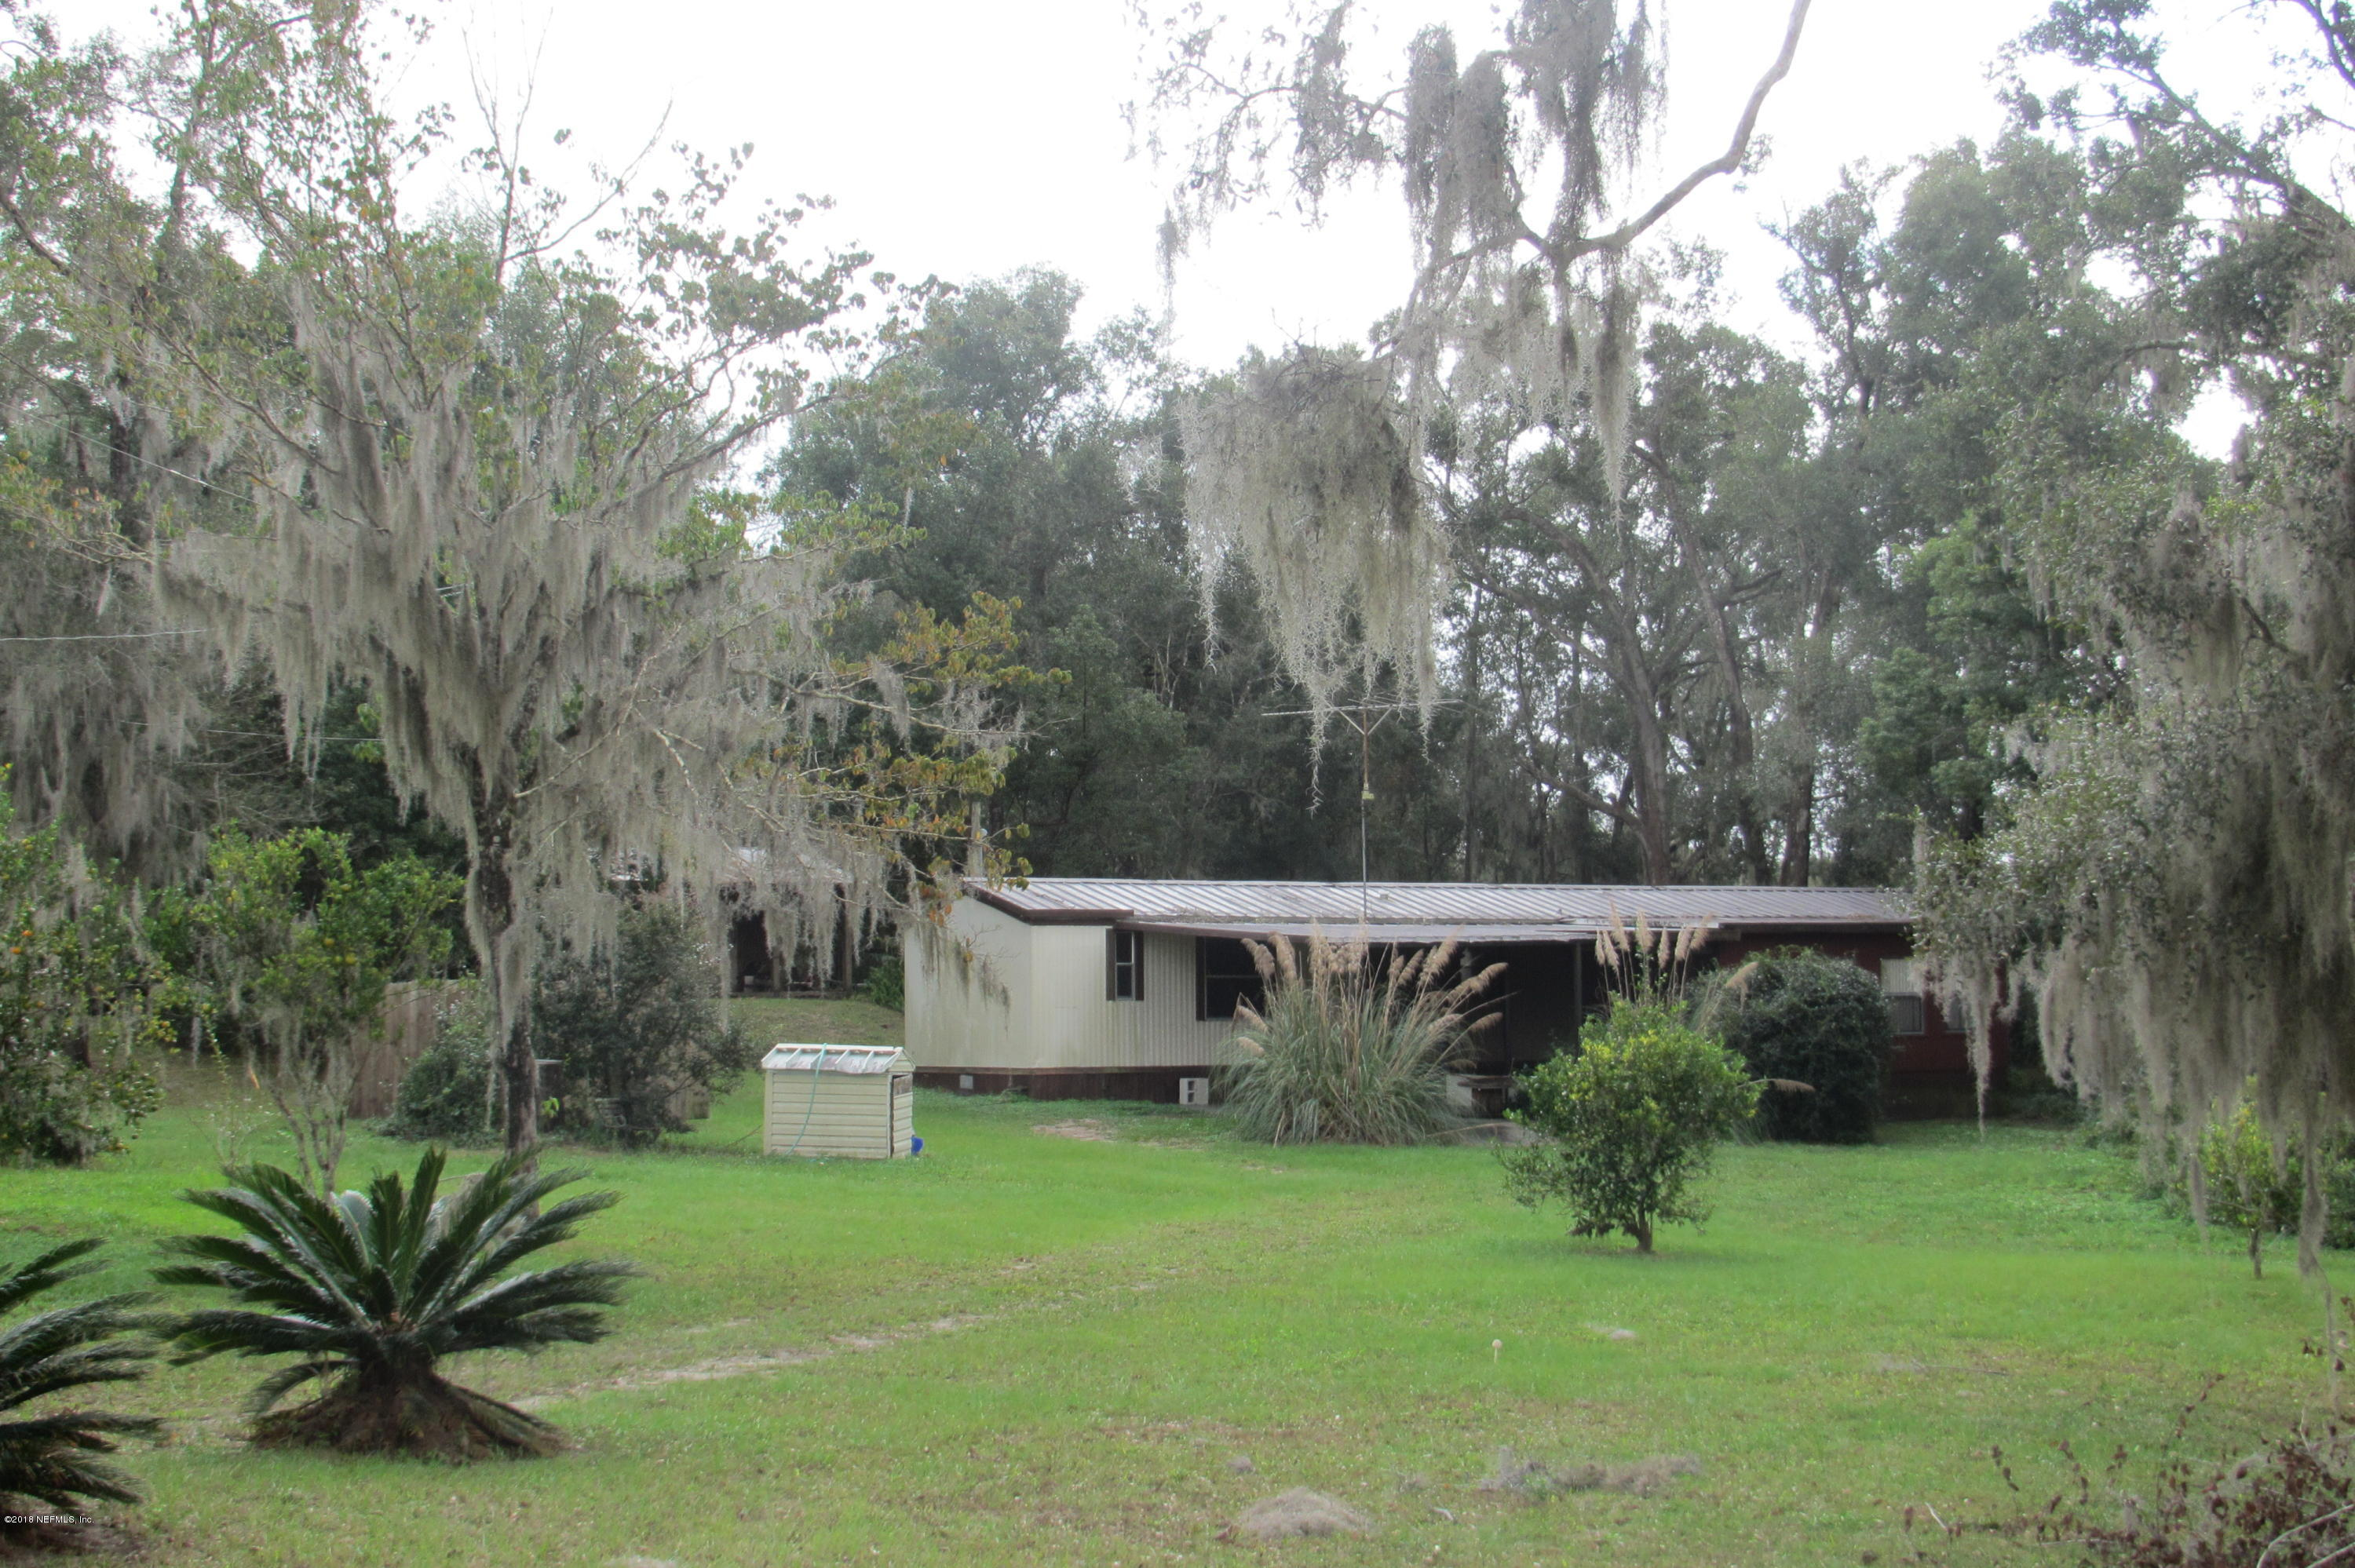 245 MAIN, POMONA PARK, FLORIDA 32181, 2 Bedrooms Bedrooms, ,2 BathroomsBathrooms,Residential - mobile home,For sale,MAIN,966795